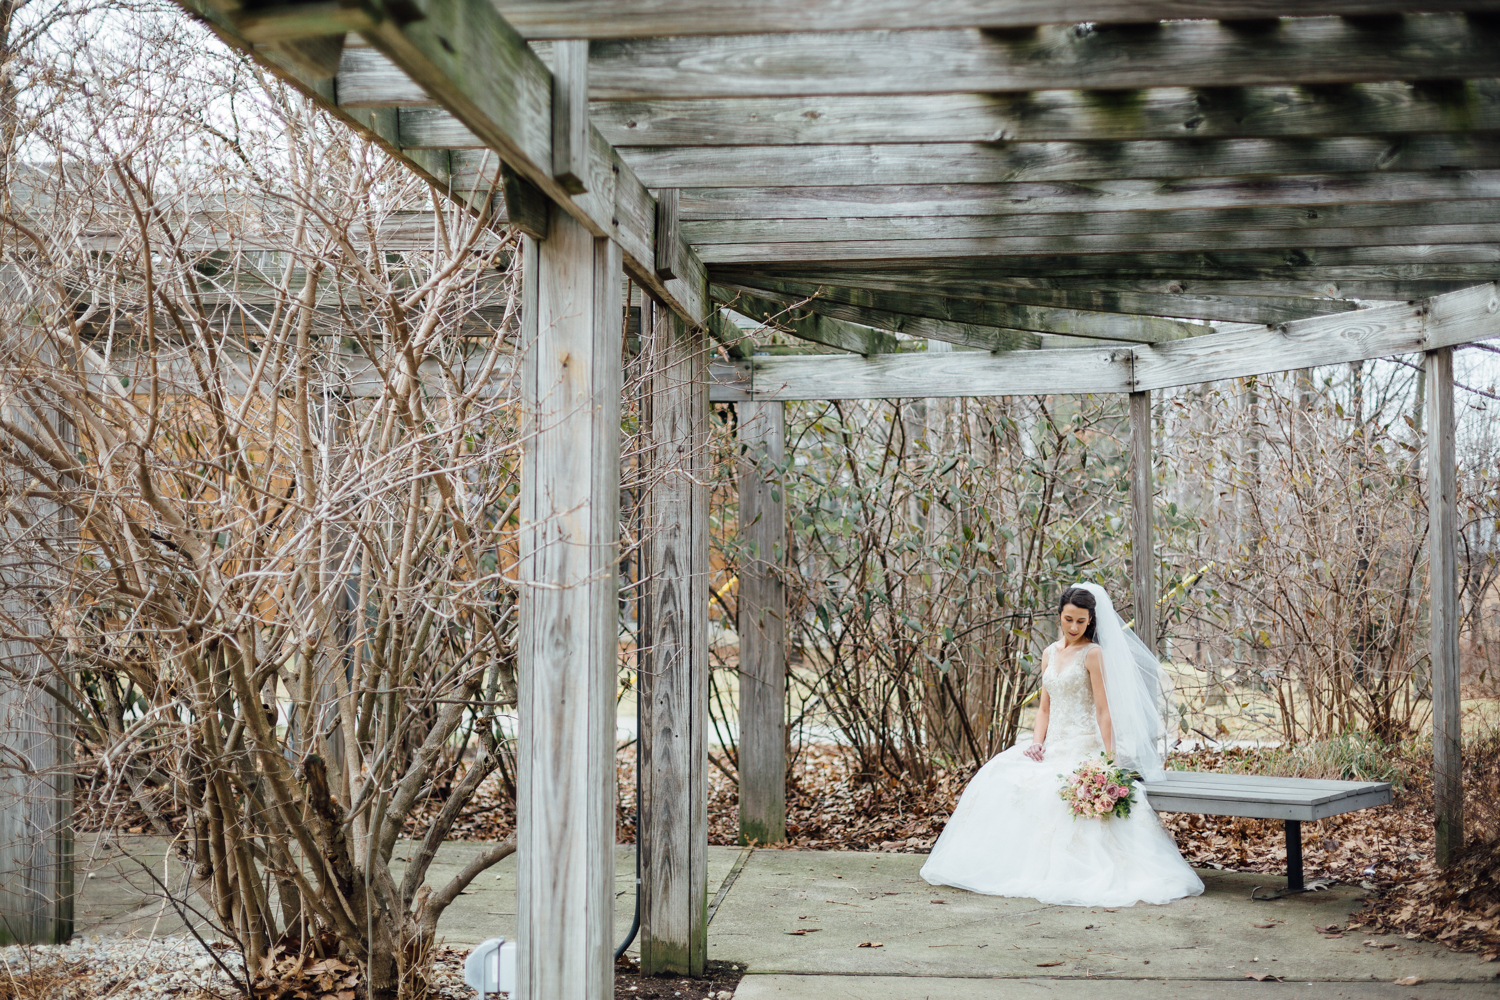 Fun, Intimate Spring Wedding by Corrie Mick Photography-19.jpg